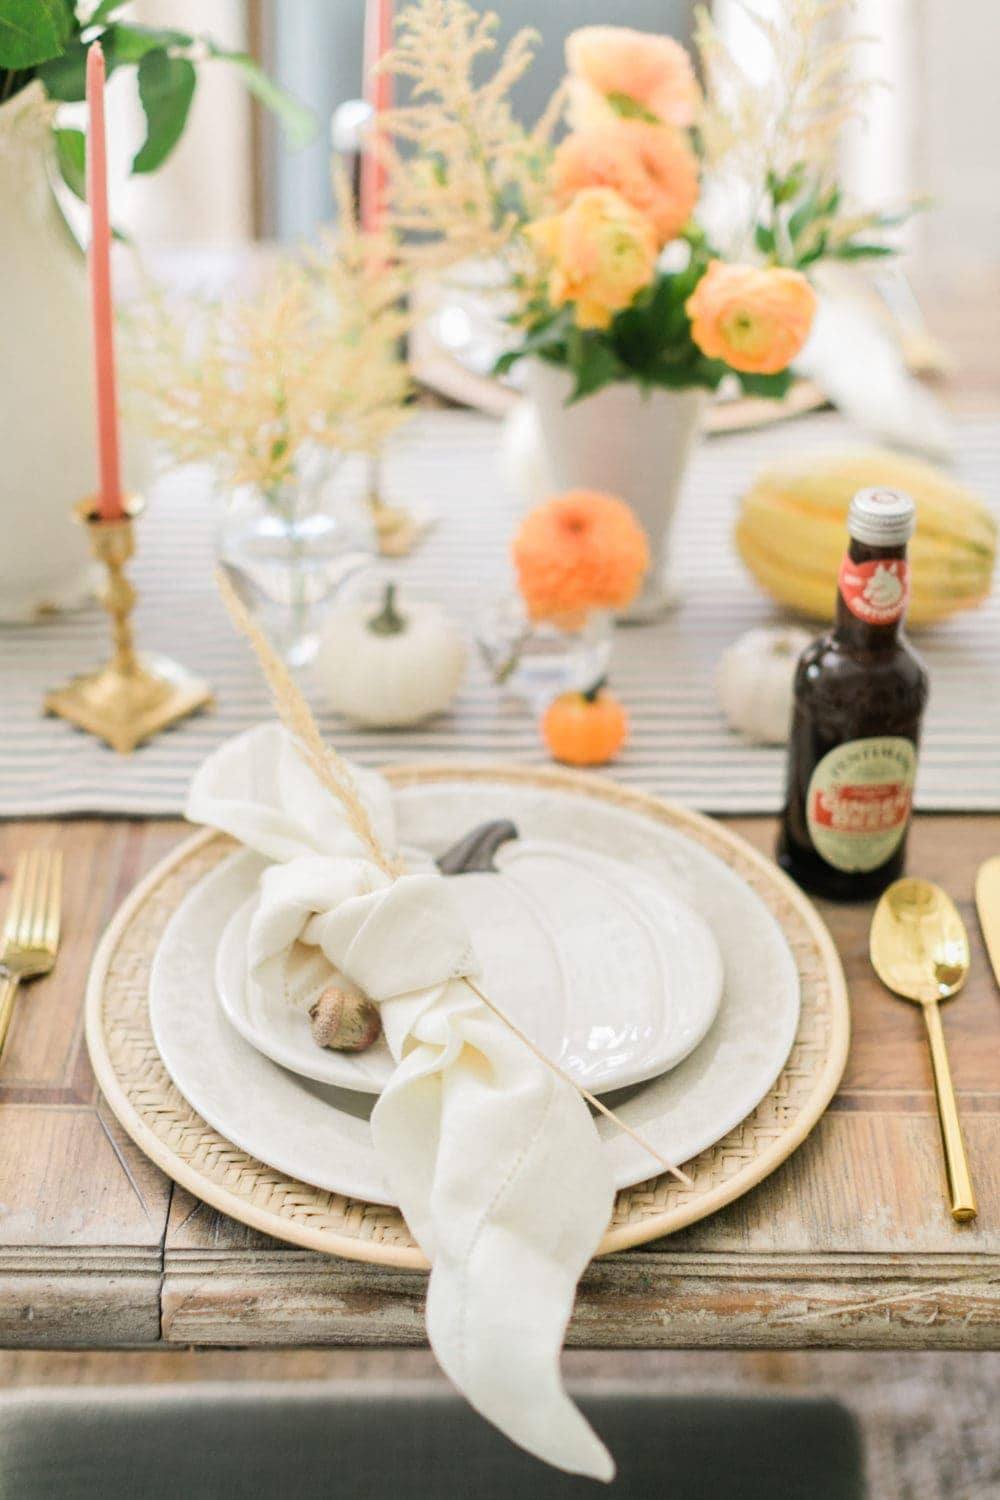 Thanksgiving table centerpieces with mini pumpkins, gold candleholders and white napkins tied with a wheatstock